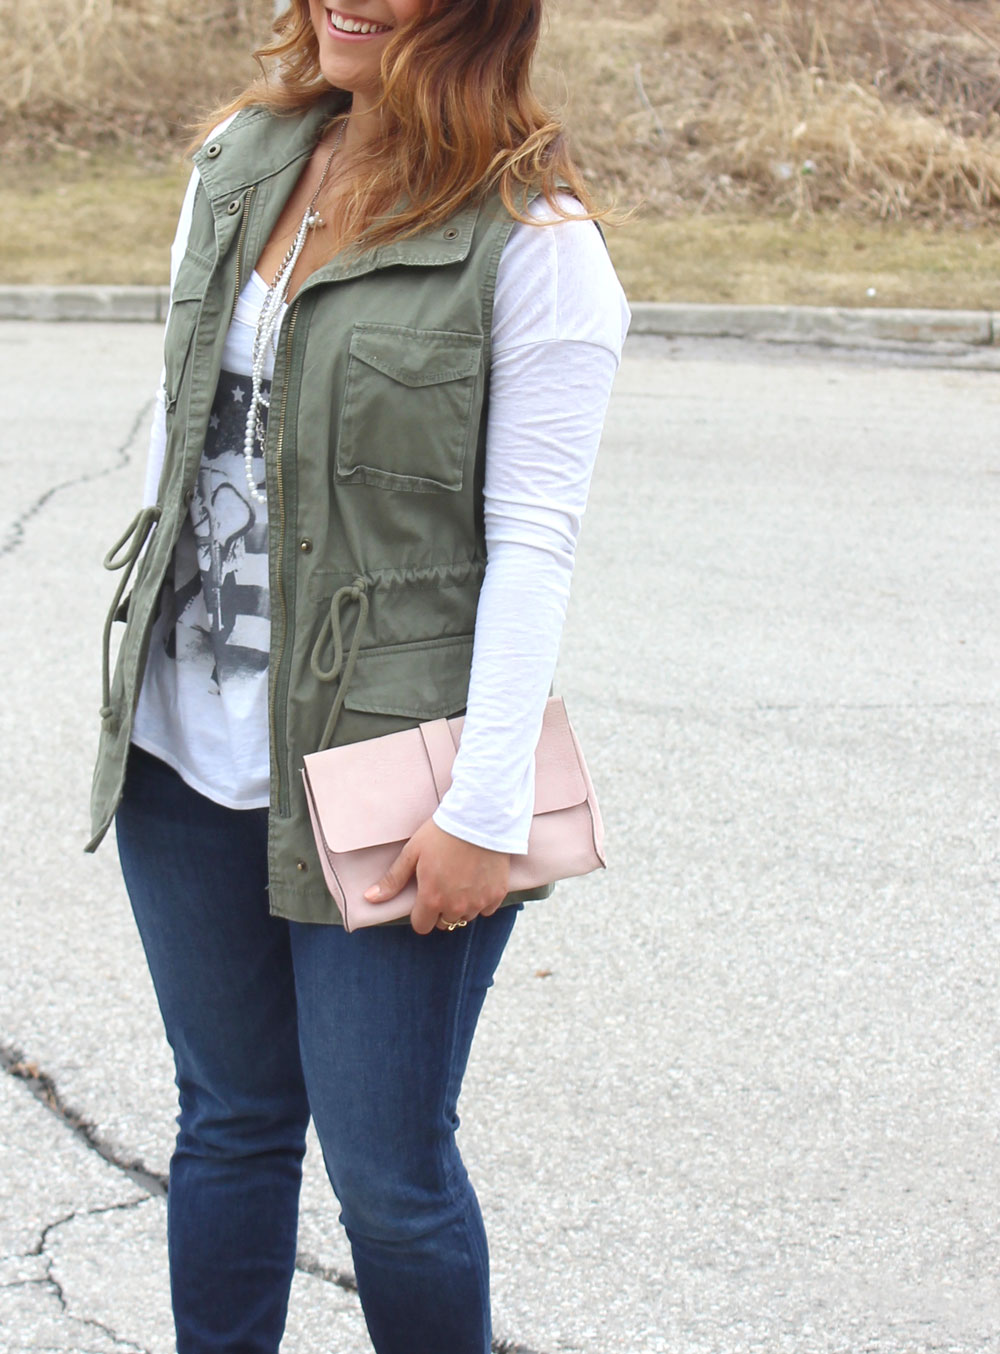 Utility Vest, Graphic Tee and Jeans - How to Layer For Spring